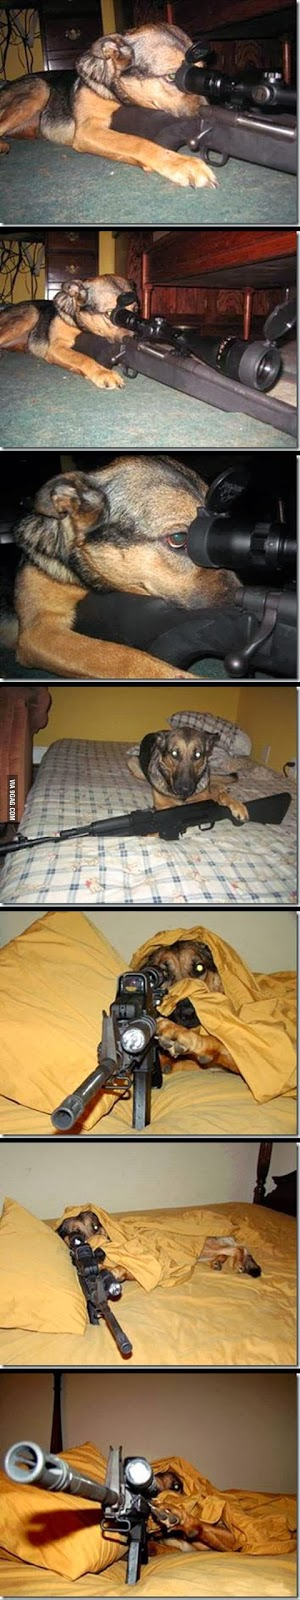 Taking Guard Dog to a Whole New Level!